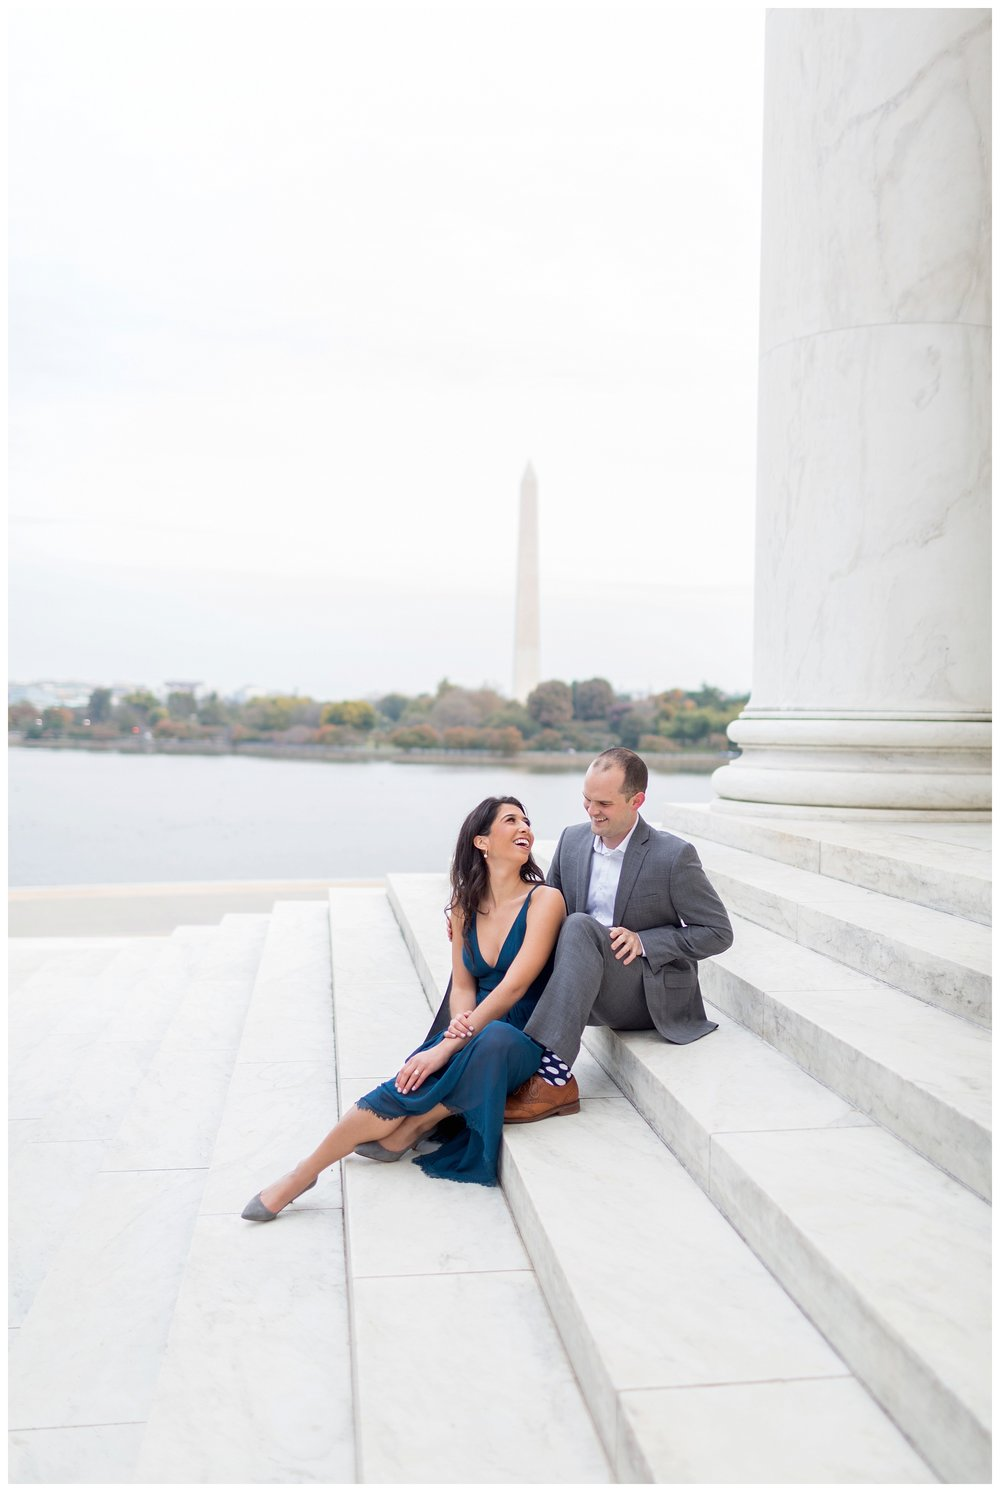 Washington DC Engagement Photos Kir Tuben_0000.jpg